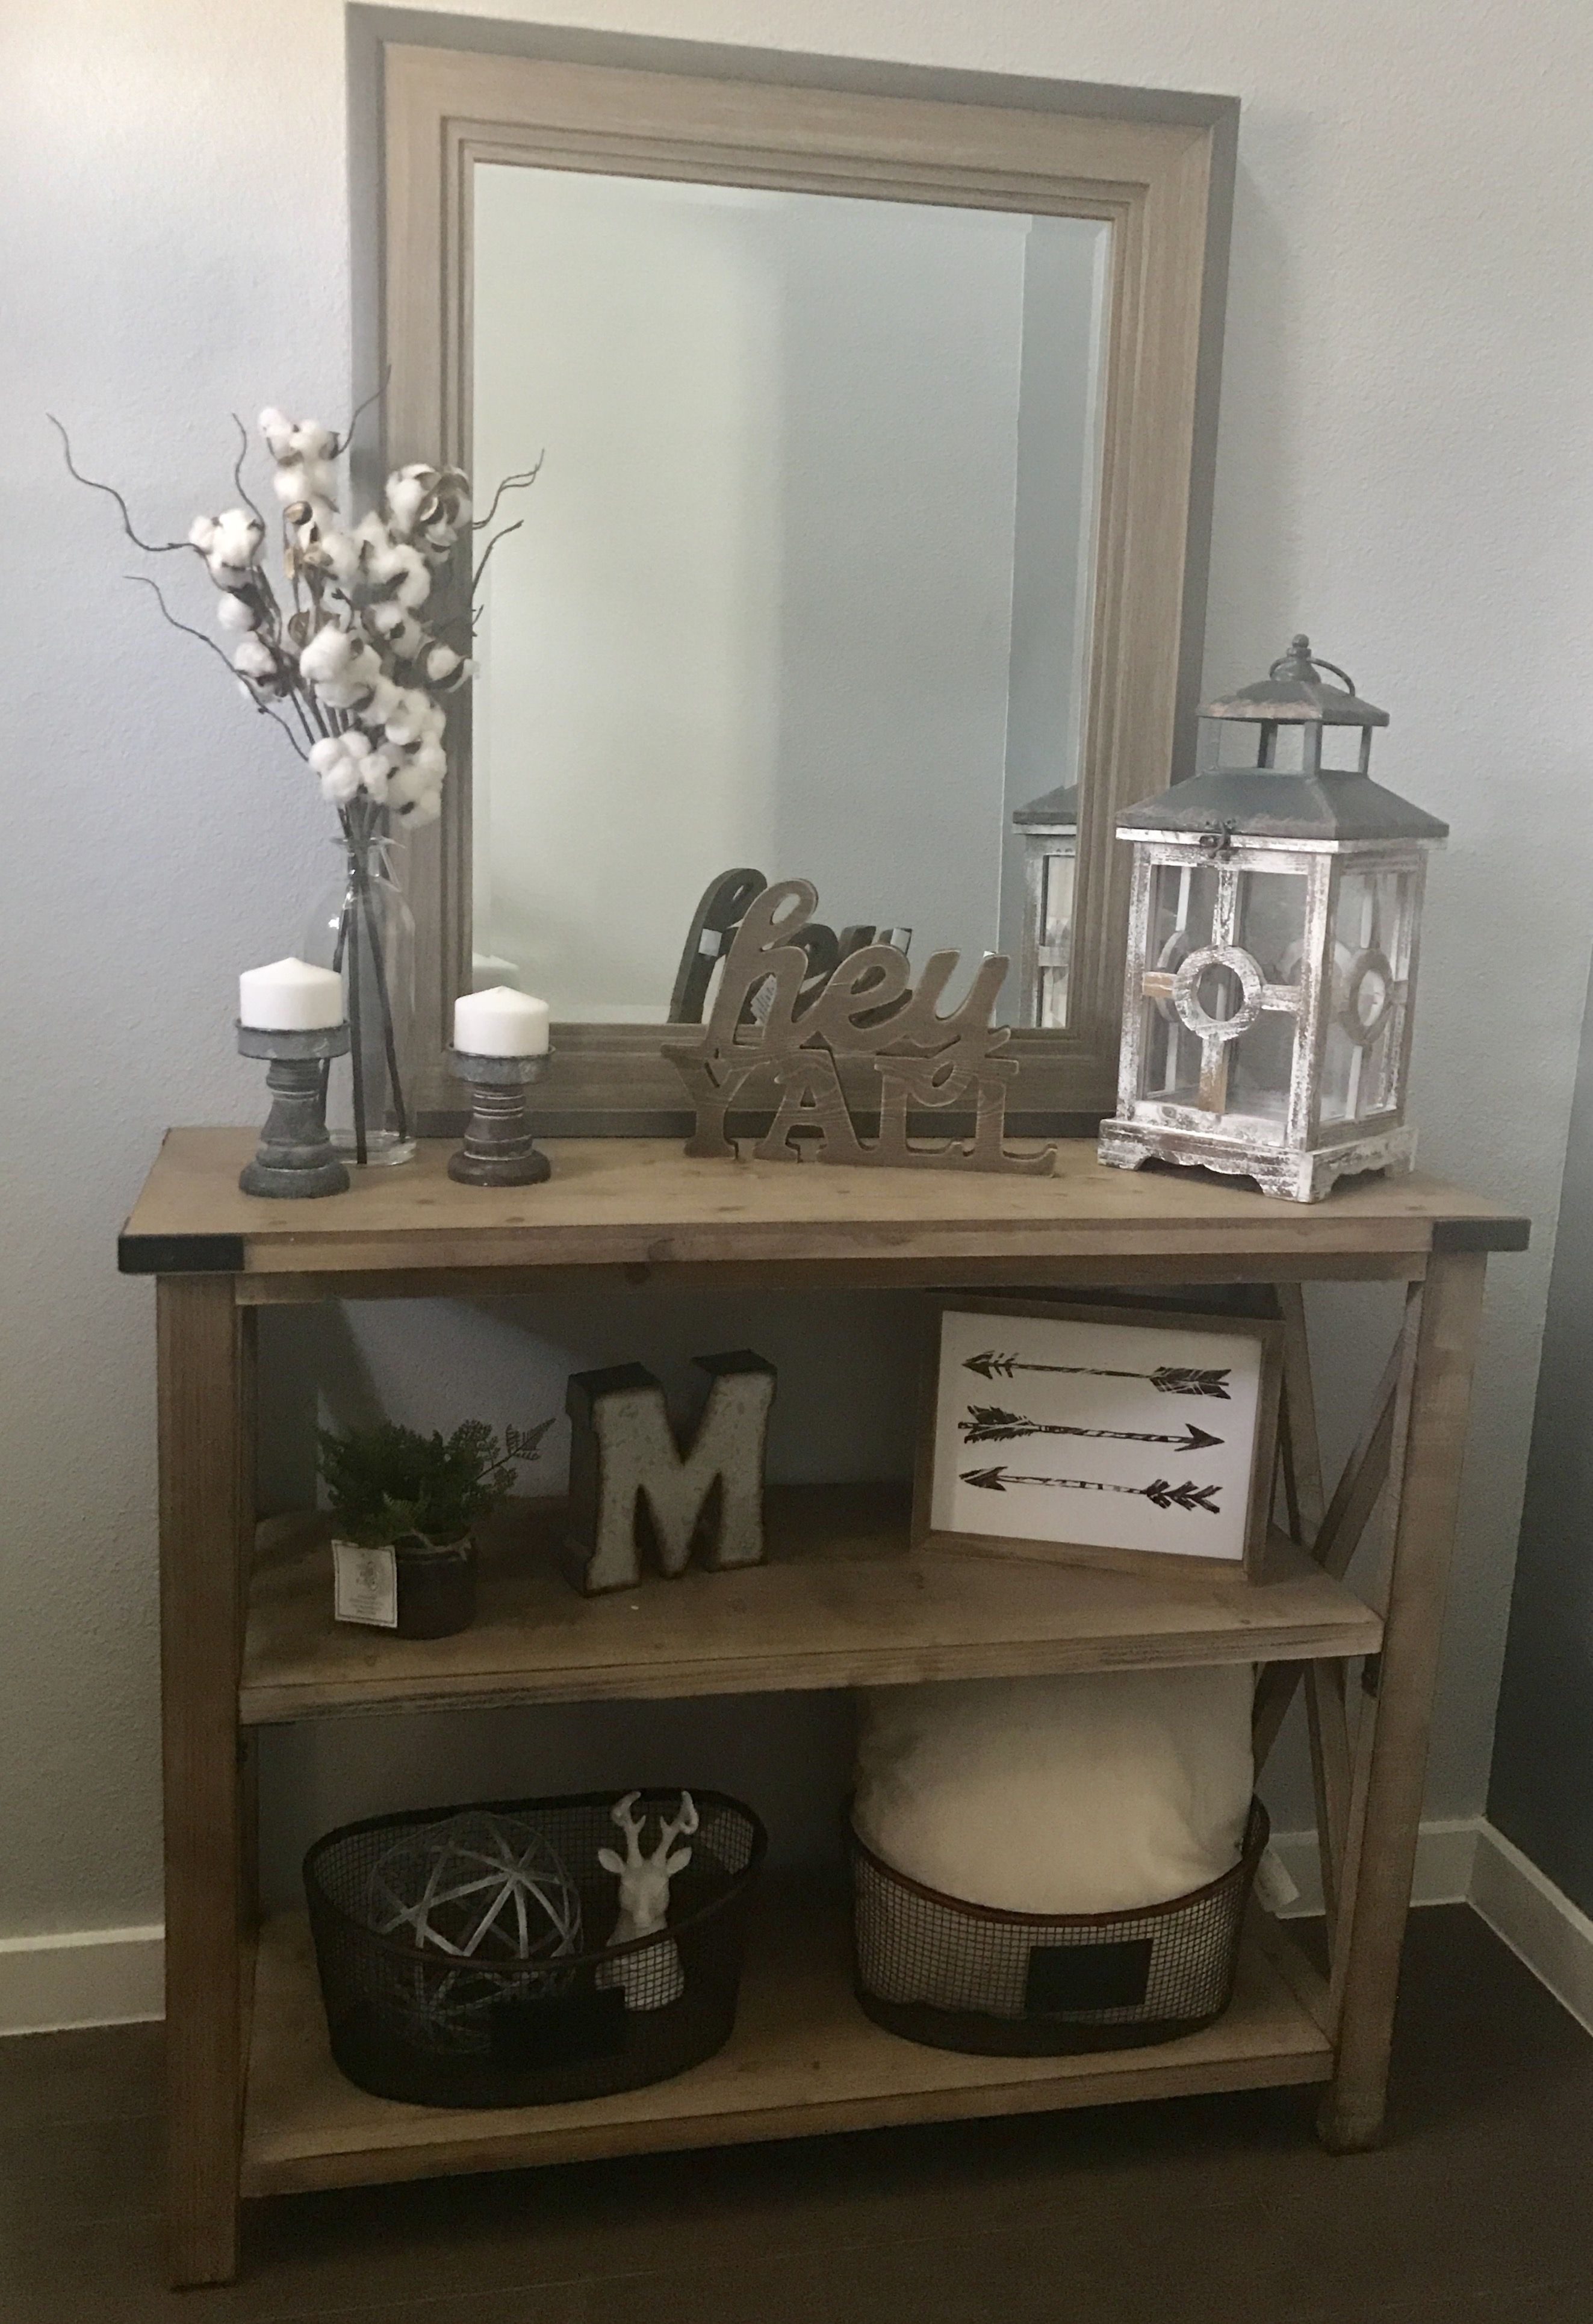 new modern farmhouse entry way console table decor mcmillen home accent lighting seattle nate berkus round gold with marble top build your own coffee small foyer unusual wine